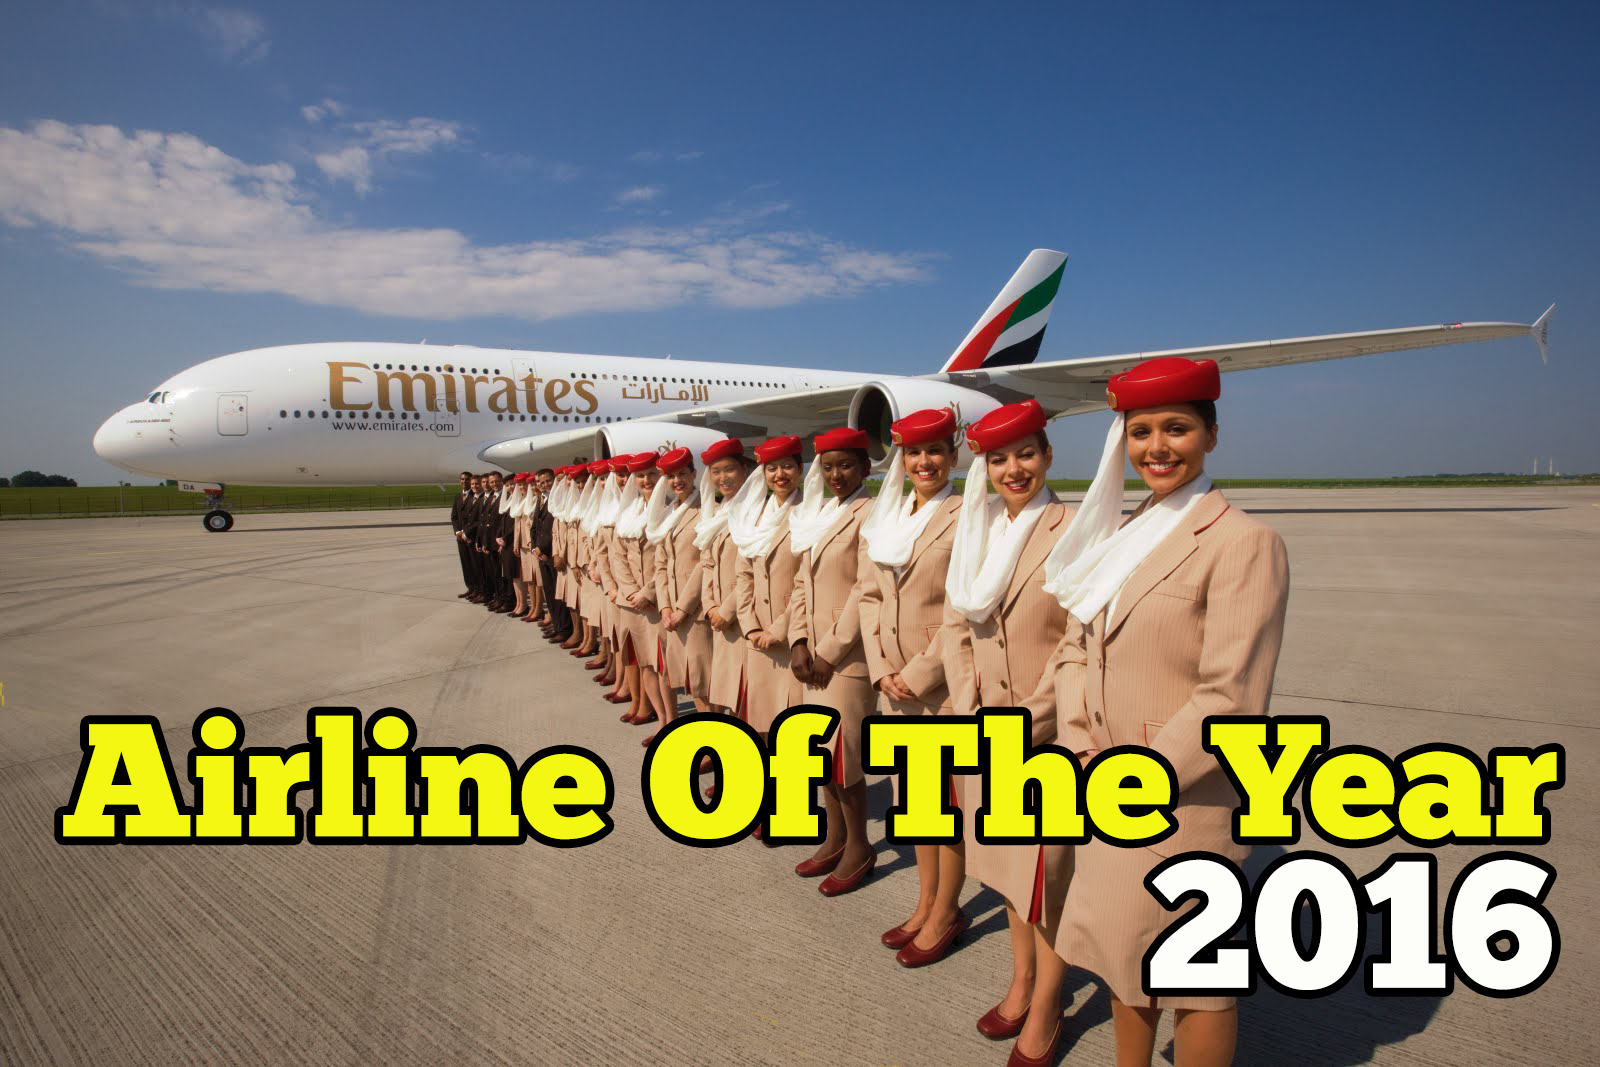 airline-of-the-year-2016